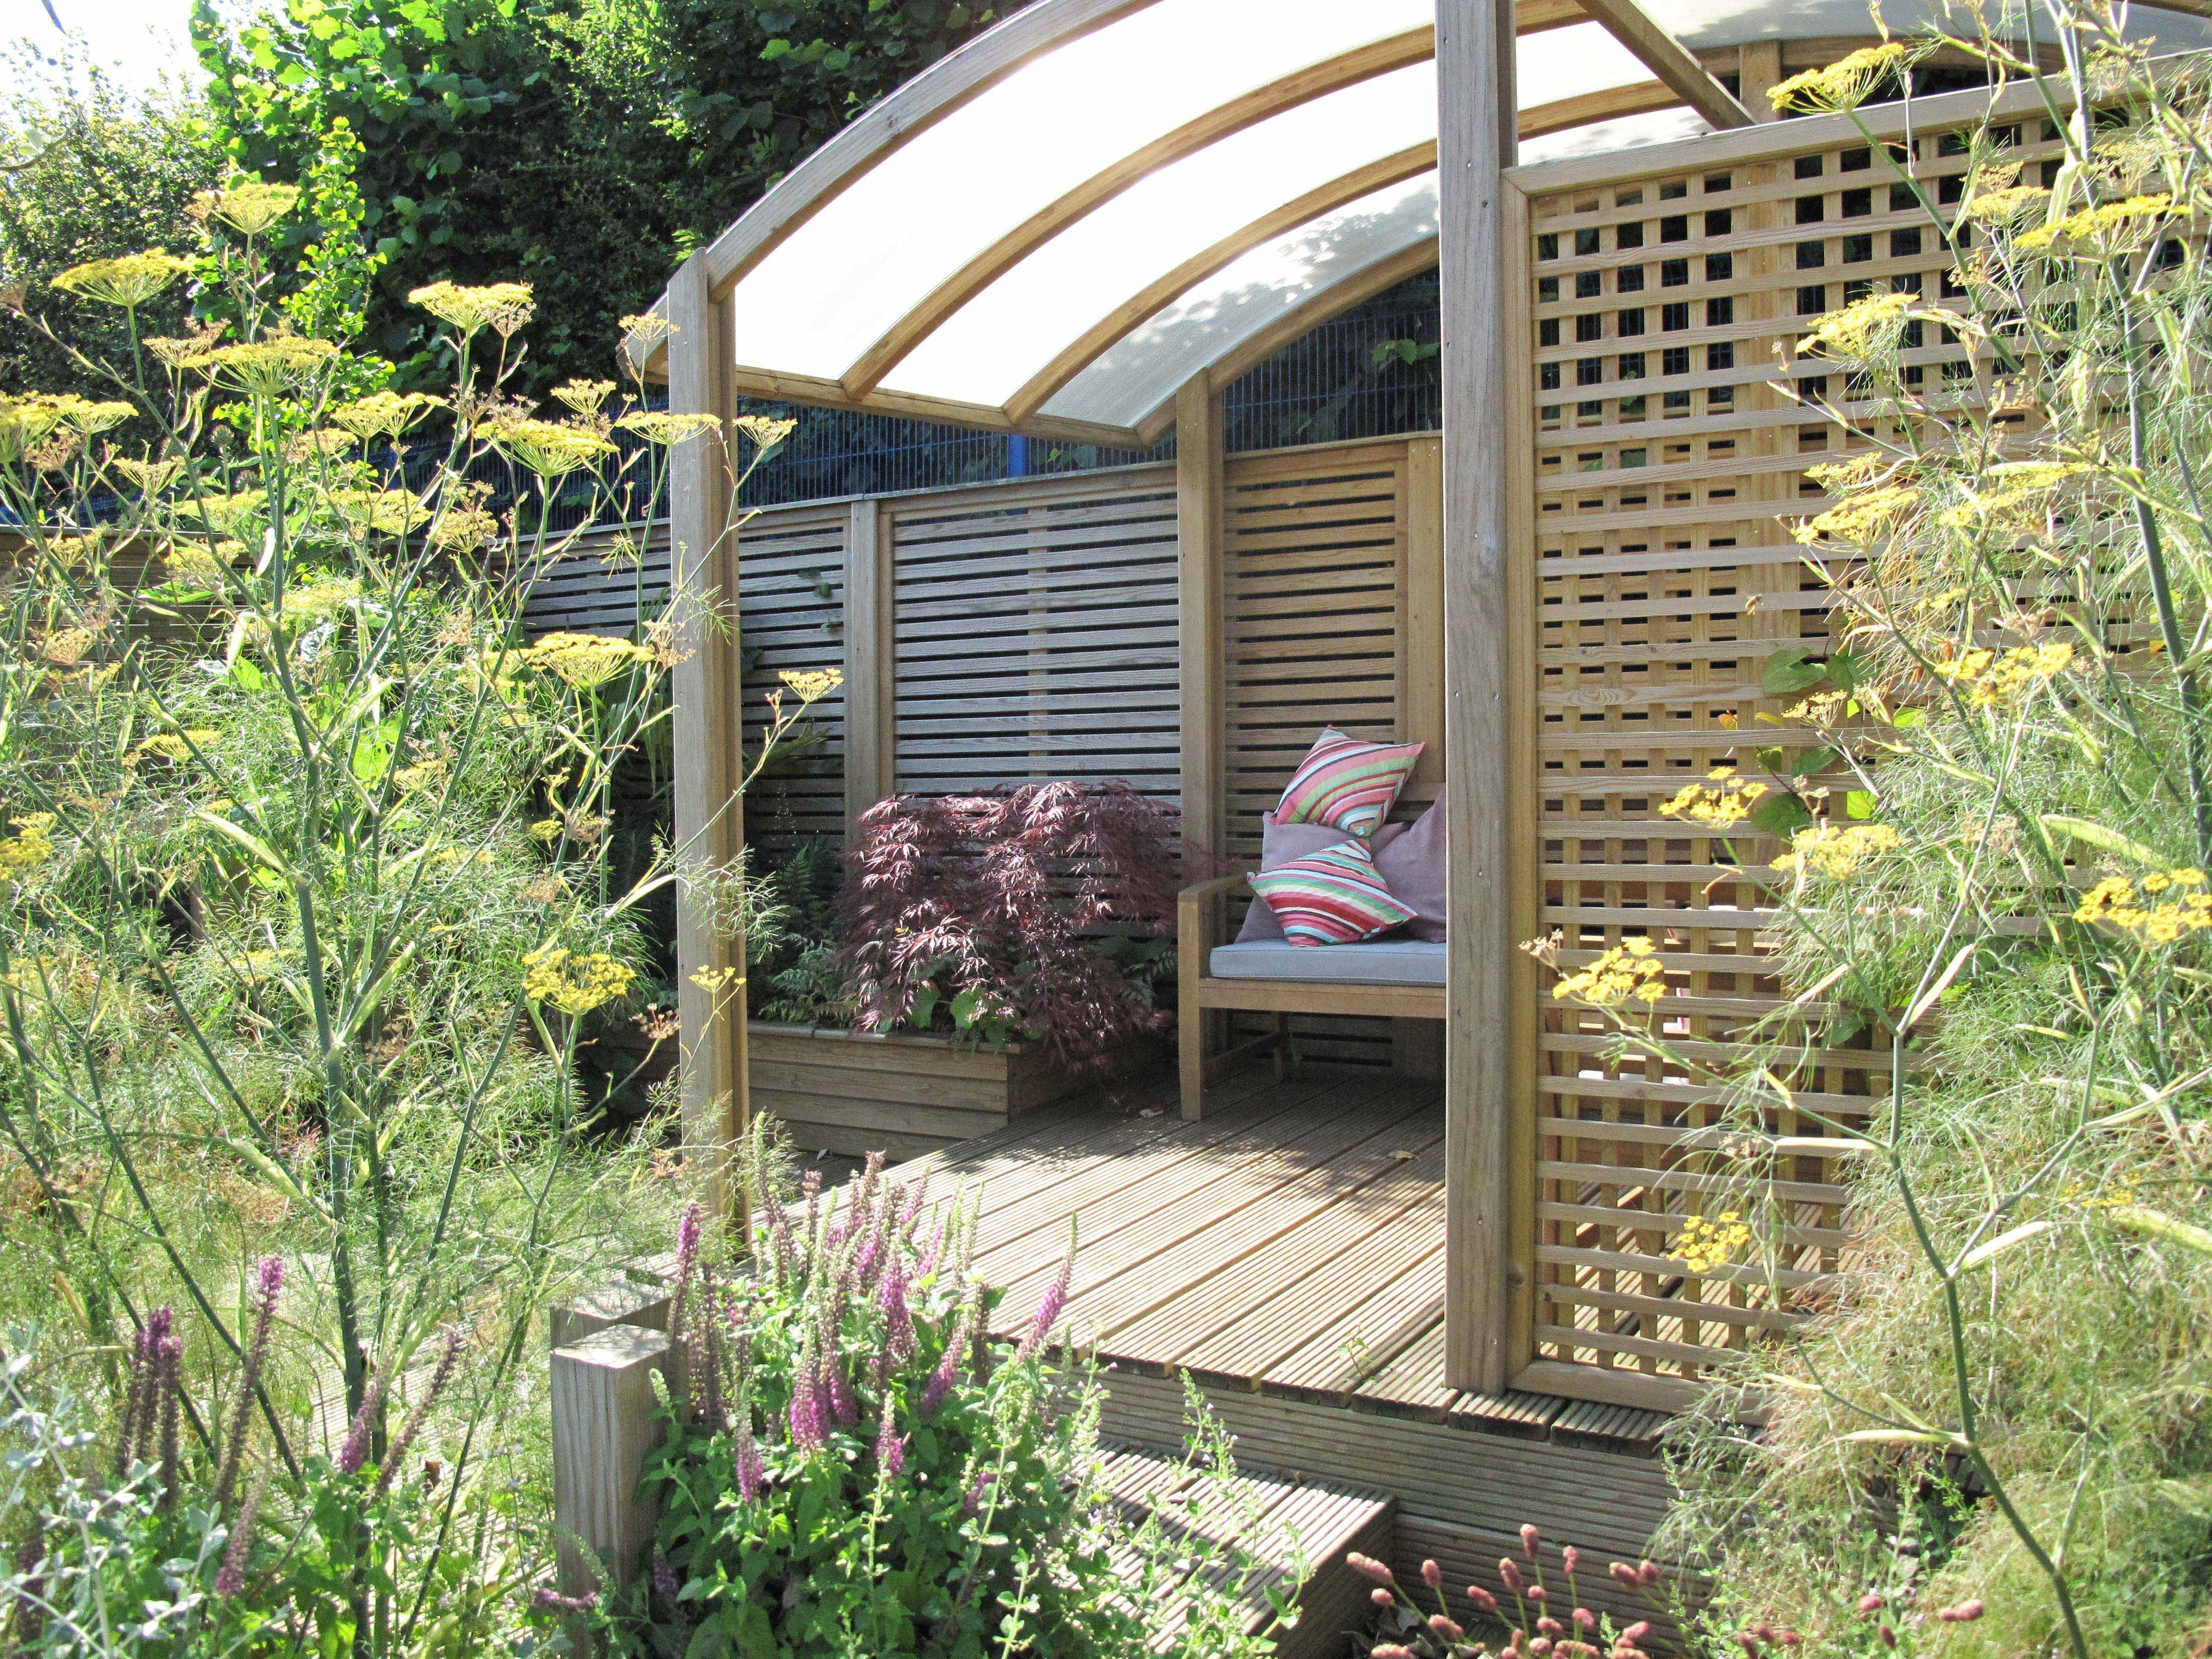 Gardens, fencing and hanging baskets on pinterest